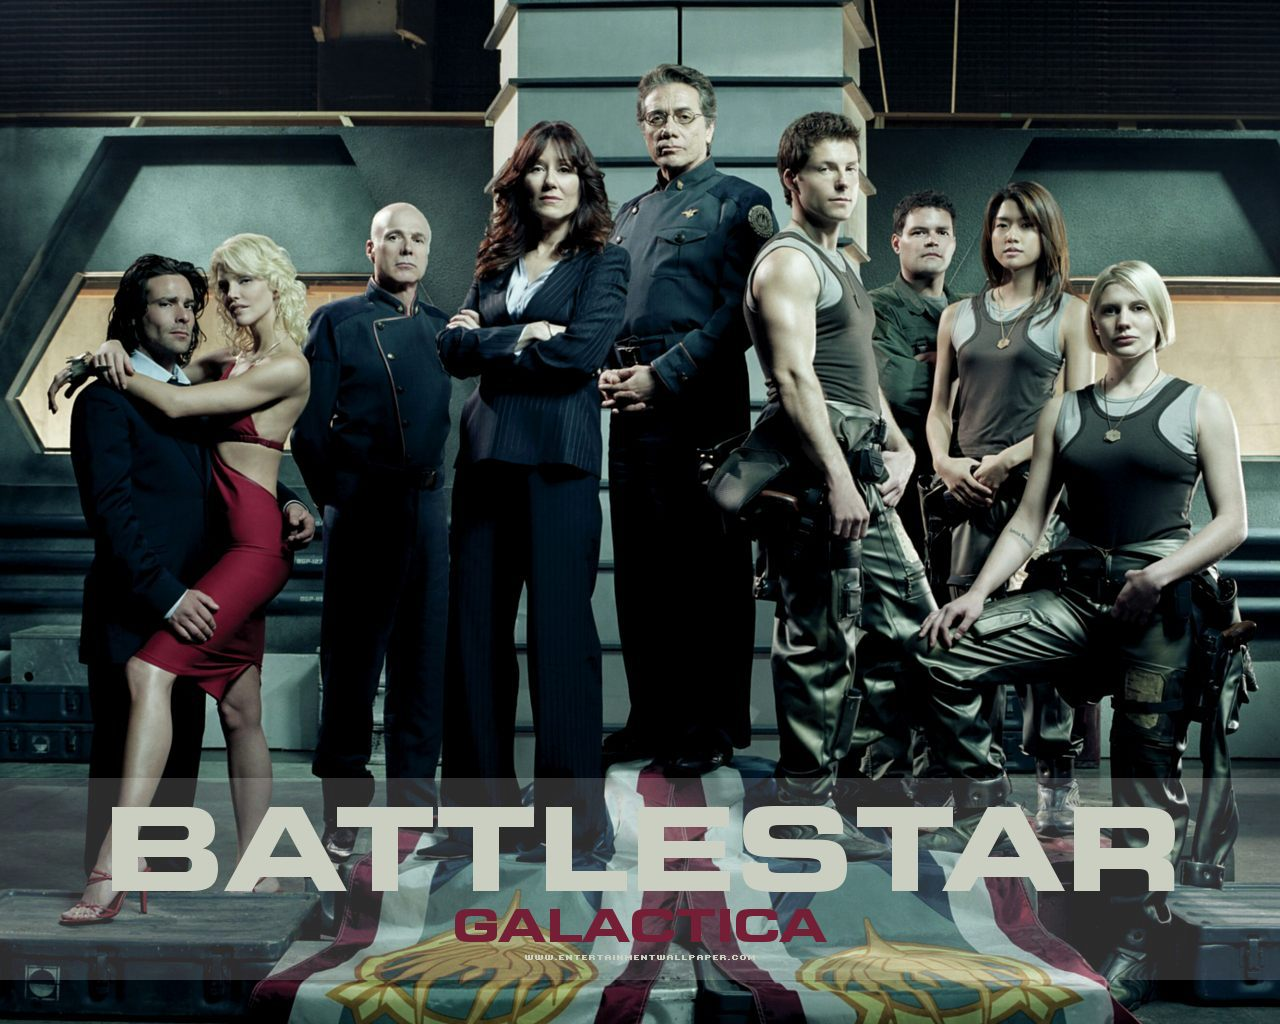 High Resolution Wallpaper | Battlestar Galactica (2003) 1280x1024 px